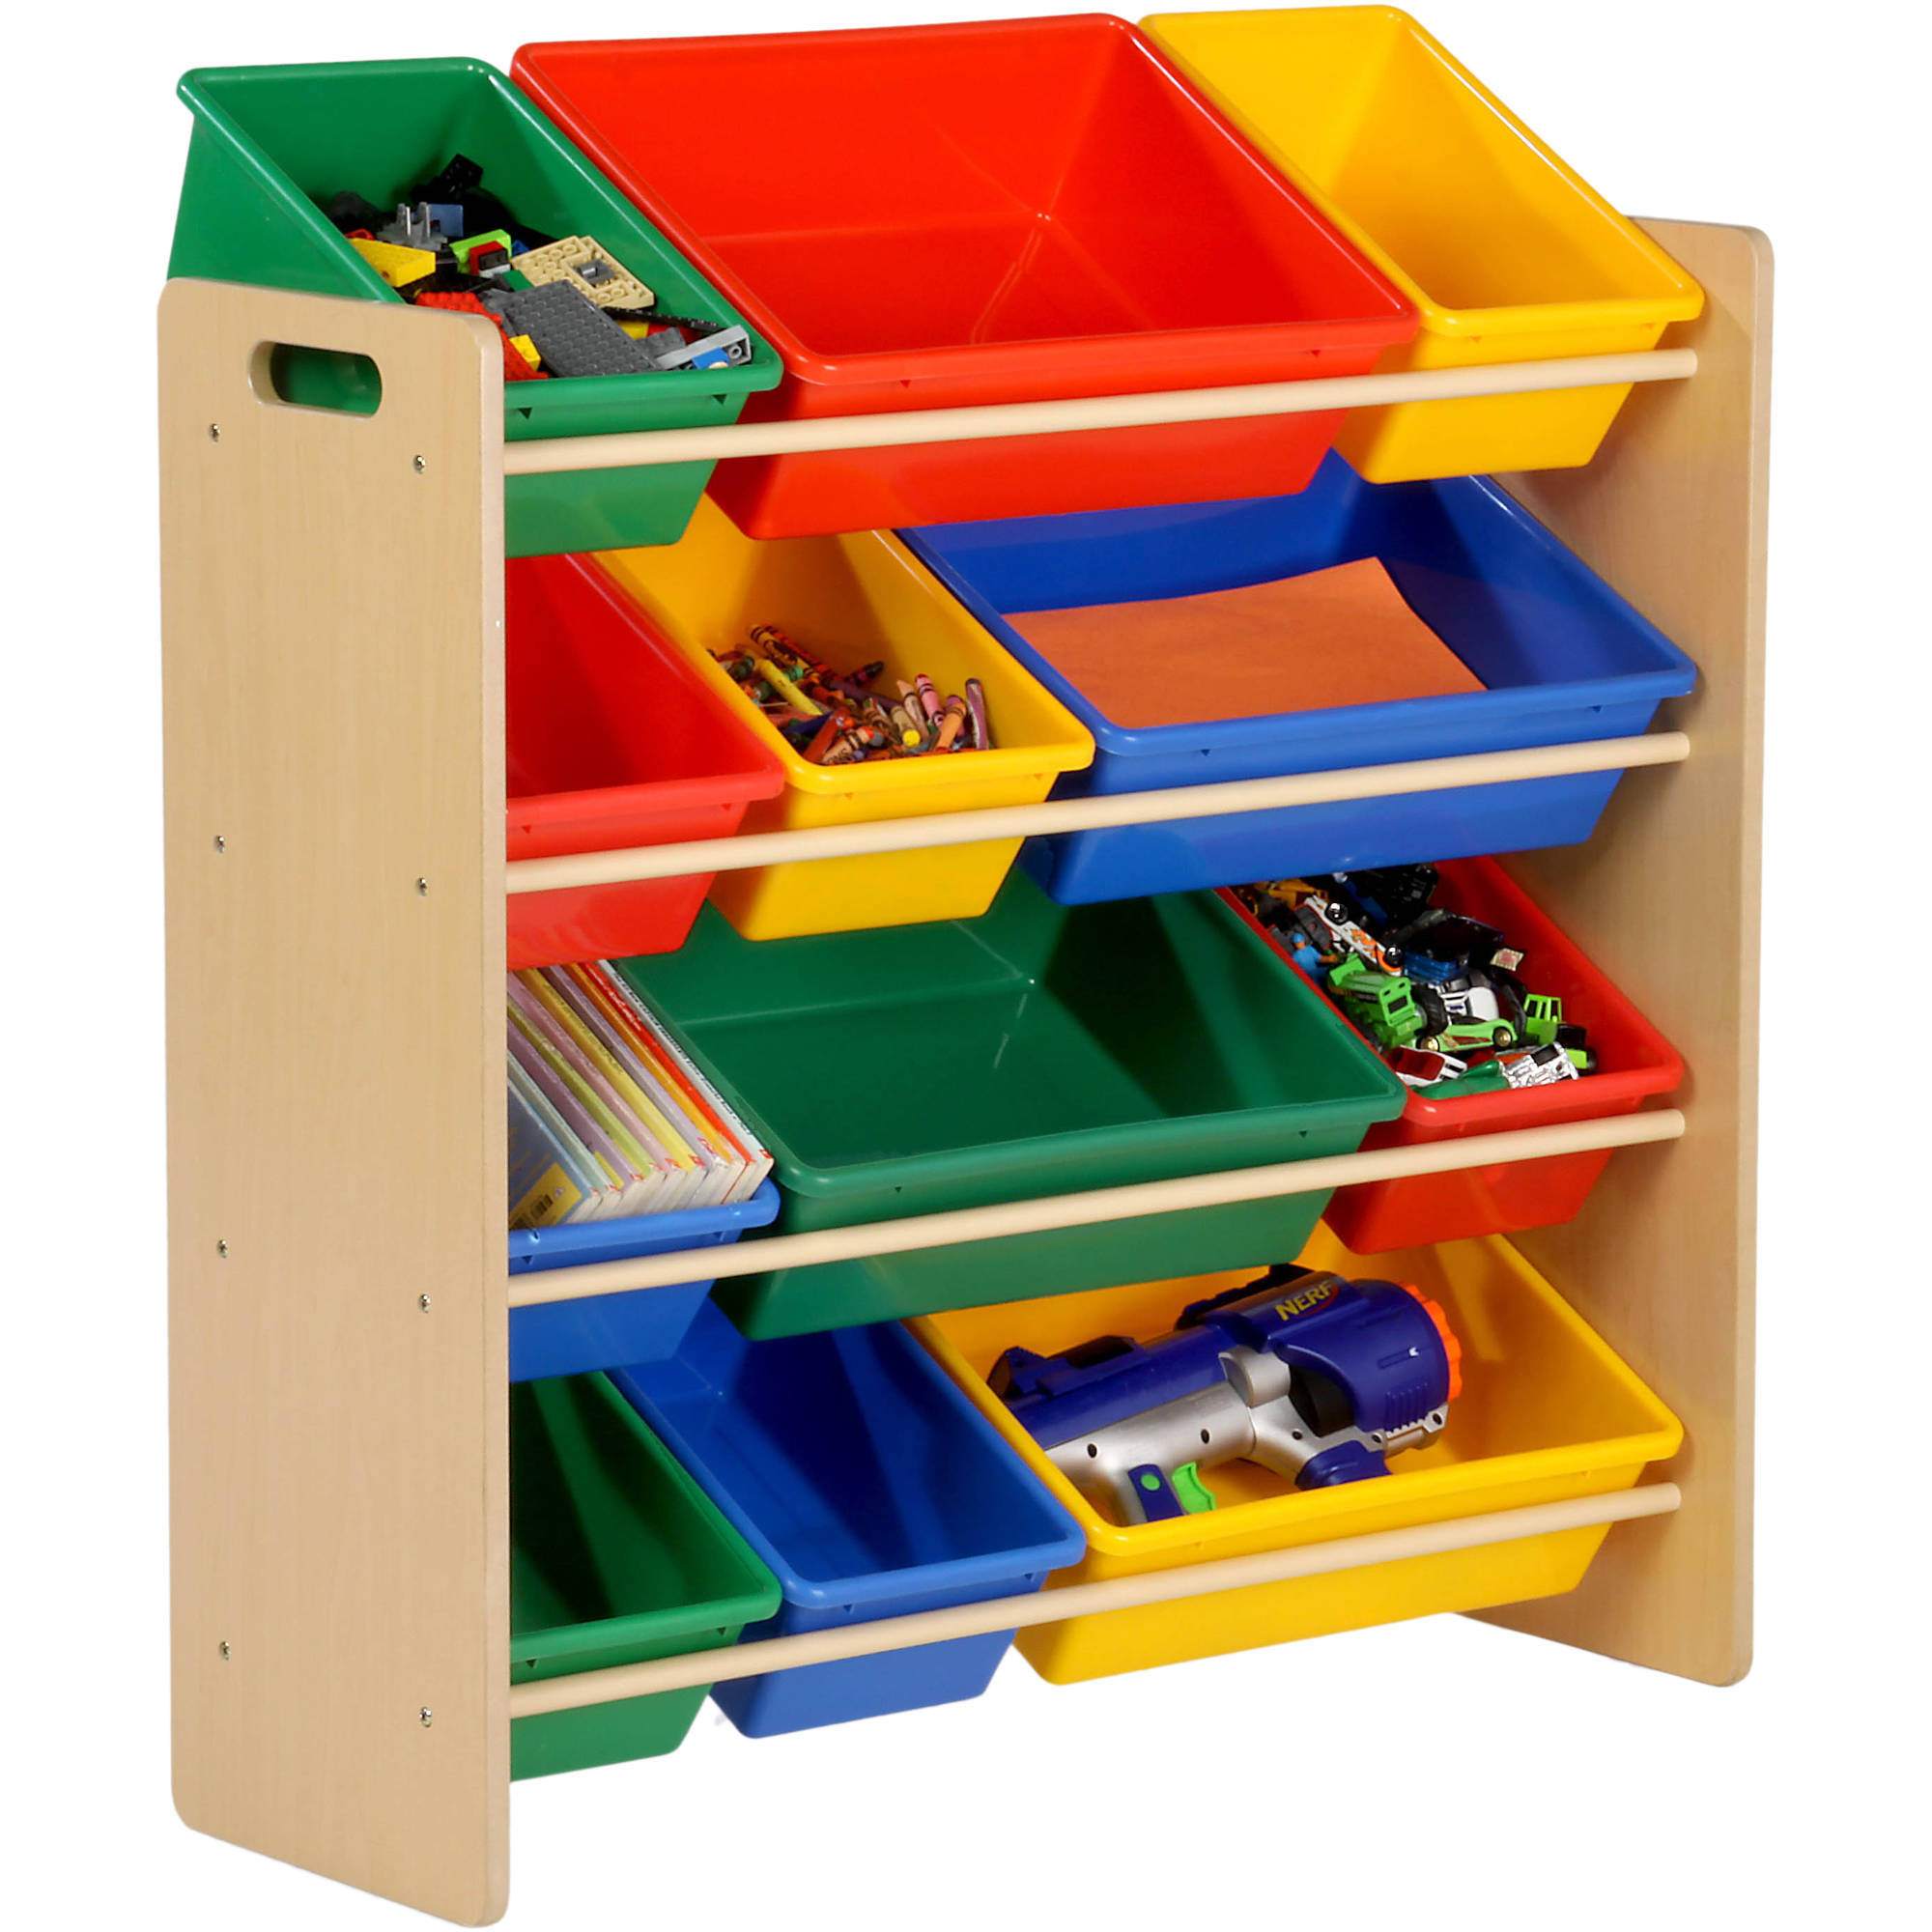 Honey Can Do Kid's Toy Organizer with 12 Storage Bins, Multicolor by Honey Can Do